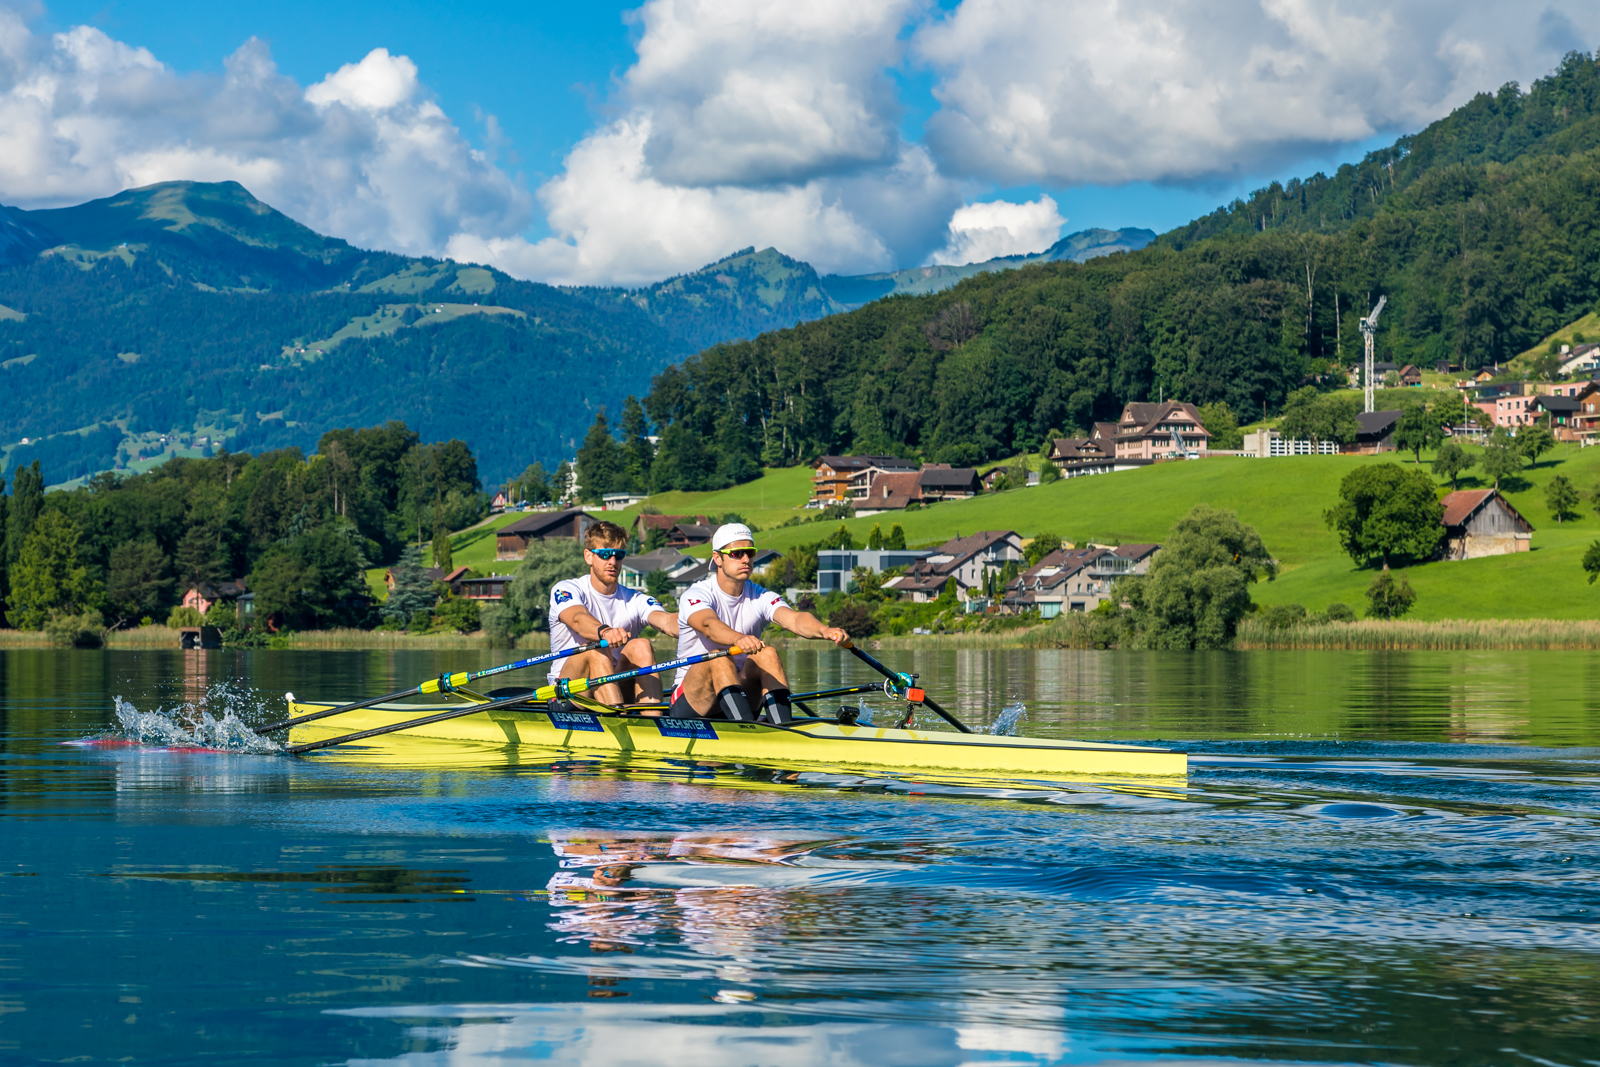 20200618-Roman-Sarnen-training-M2X-and-LM2X-113